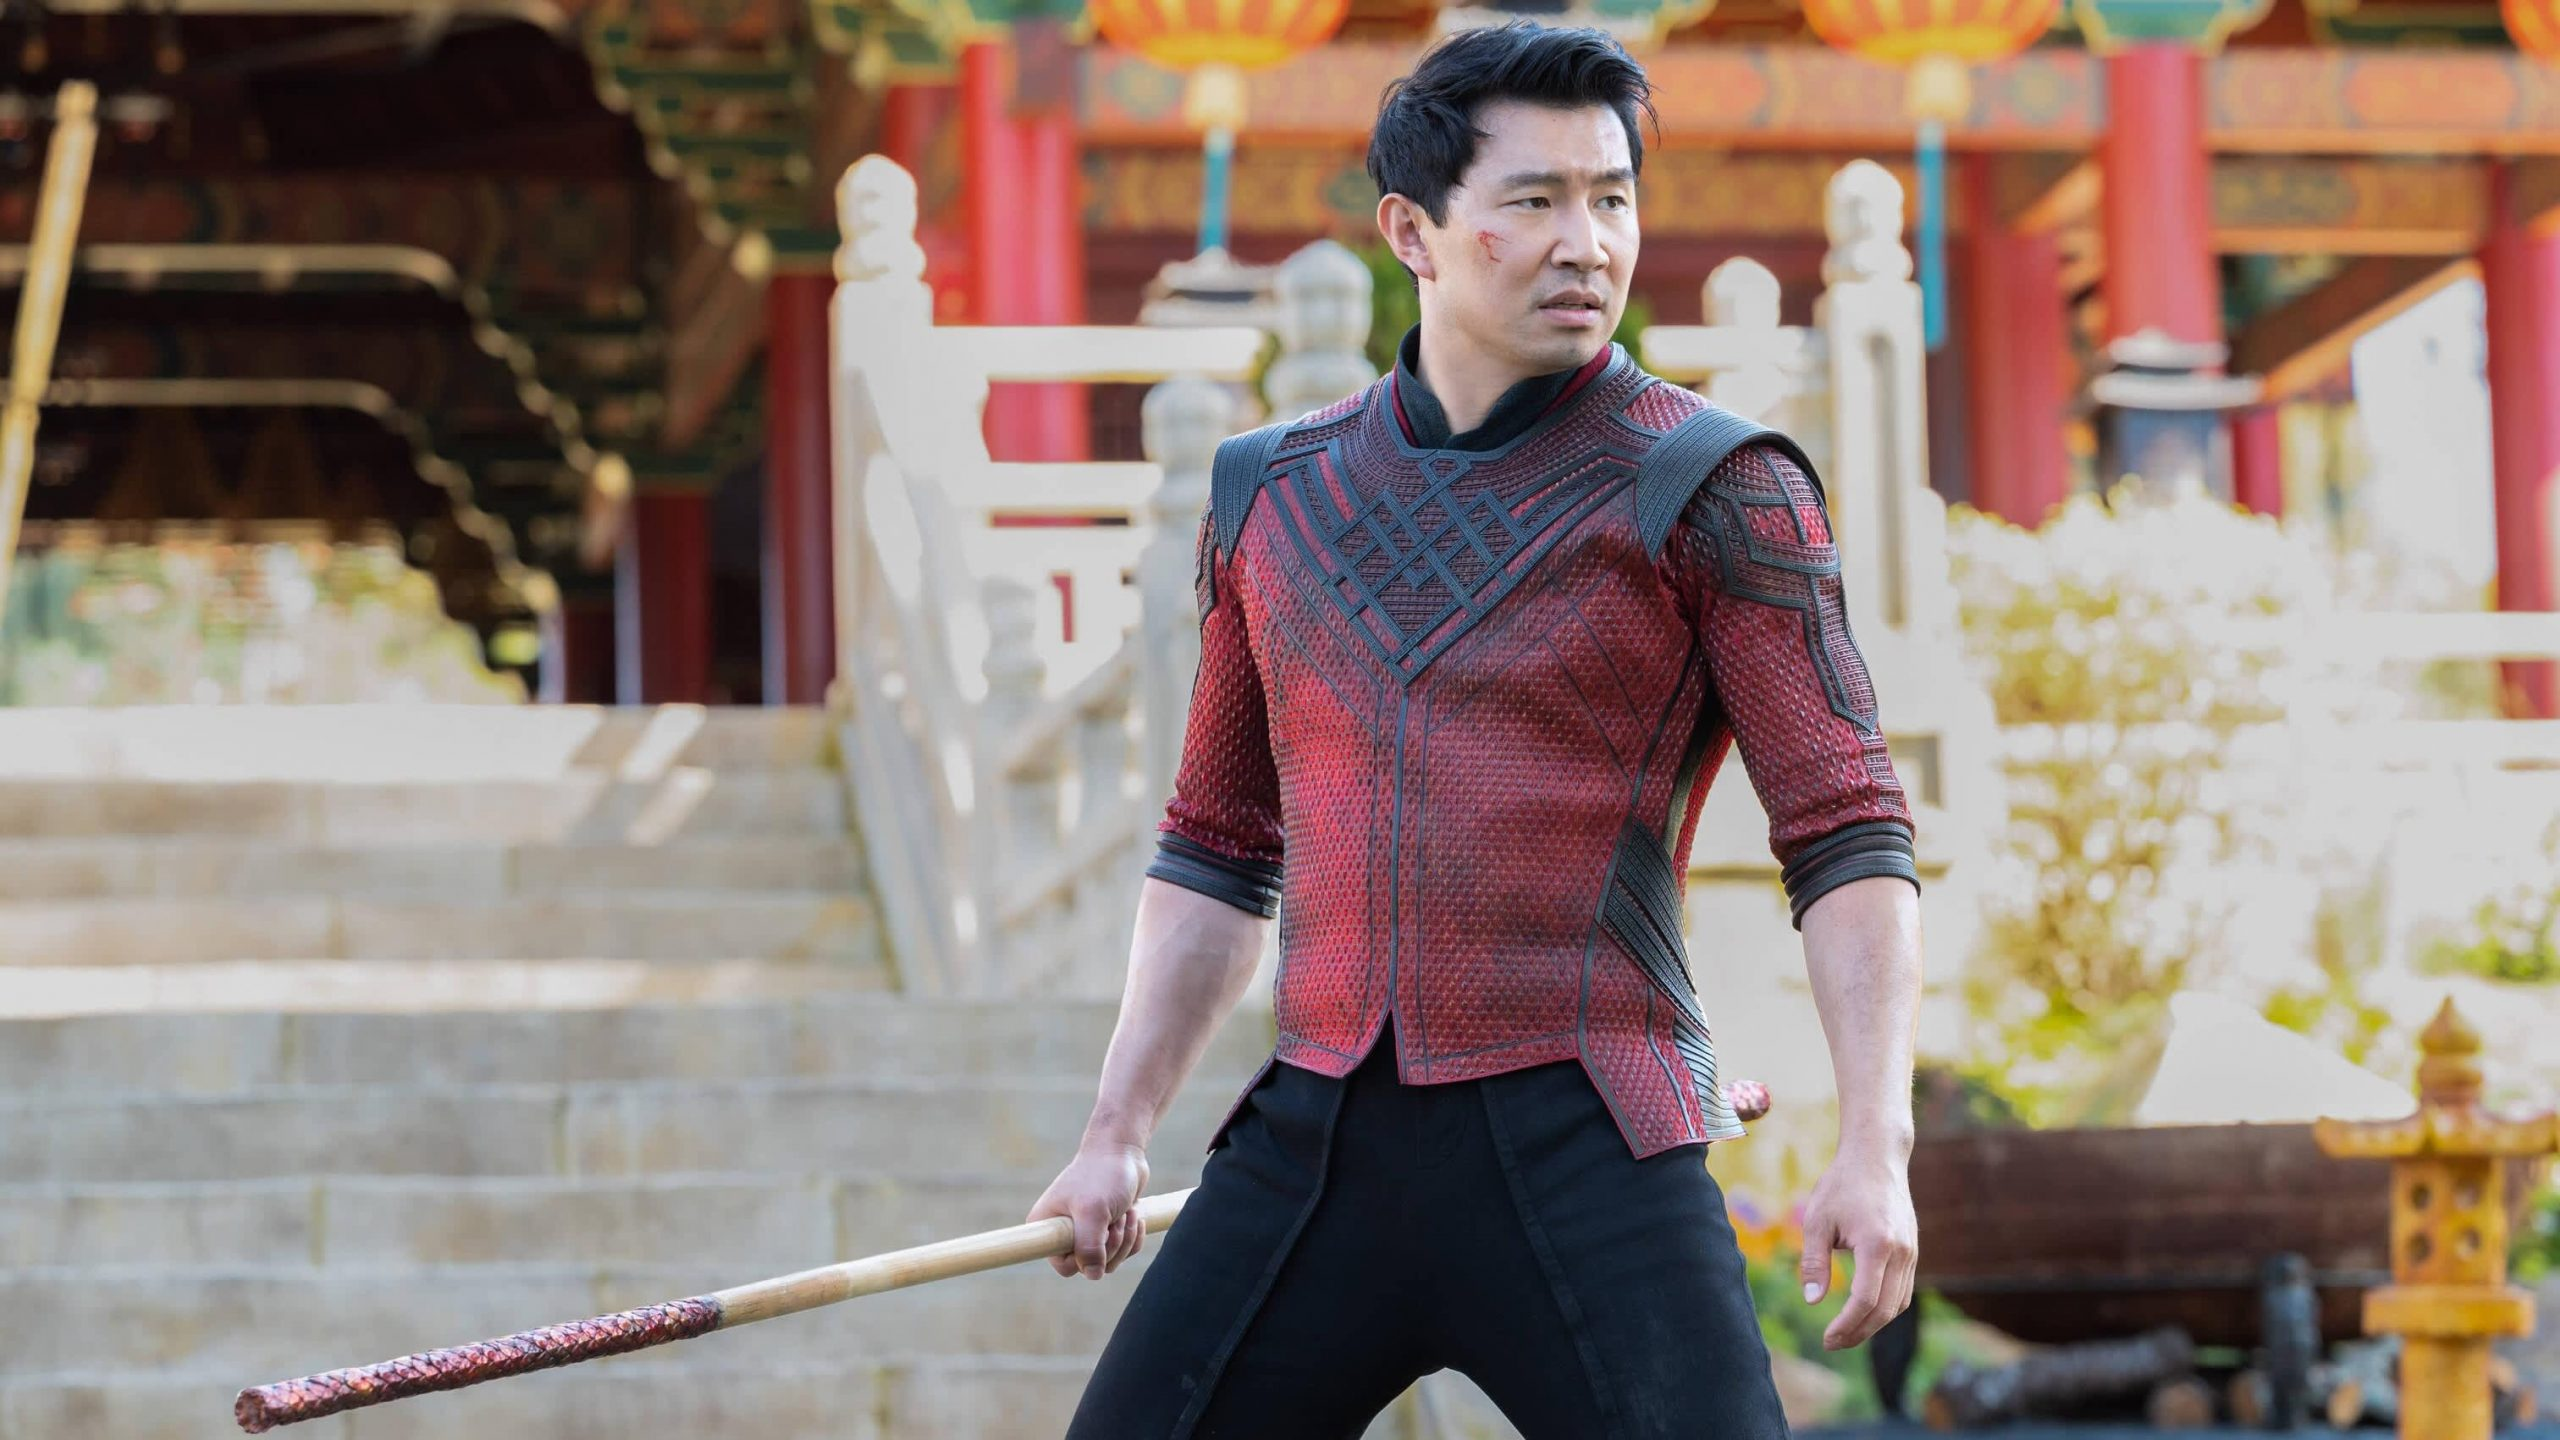 Marvel's 'Shang-Chi' snares $71.4 million in domestic opening, second-highest of the pandemic